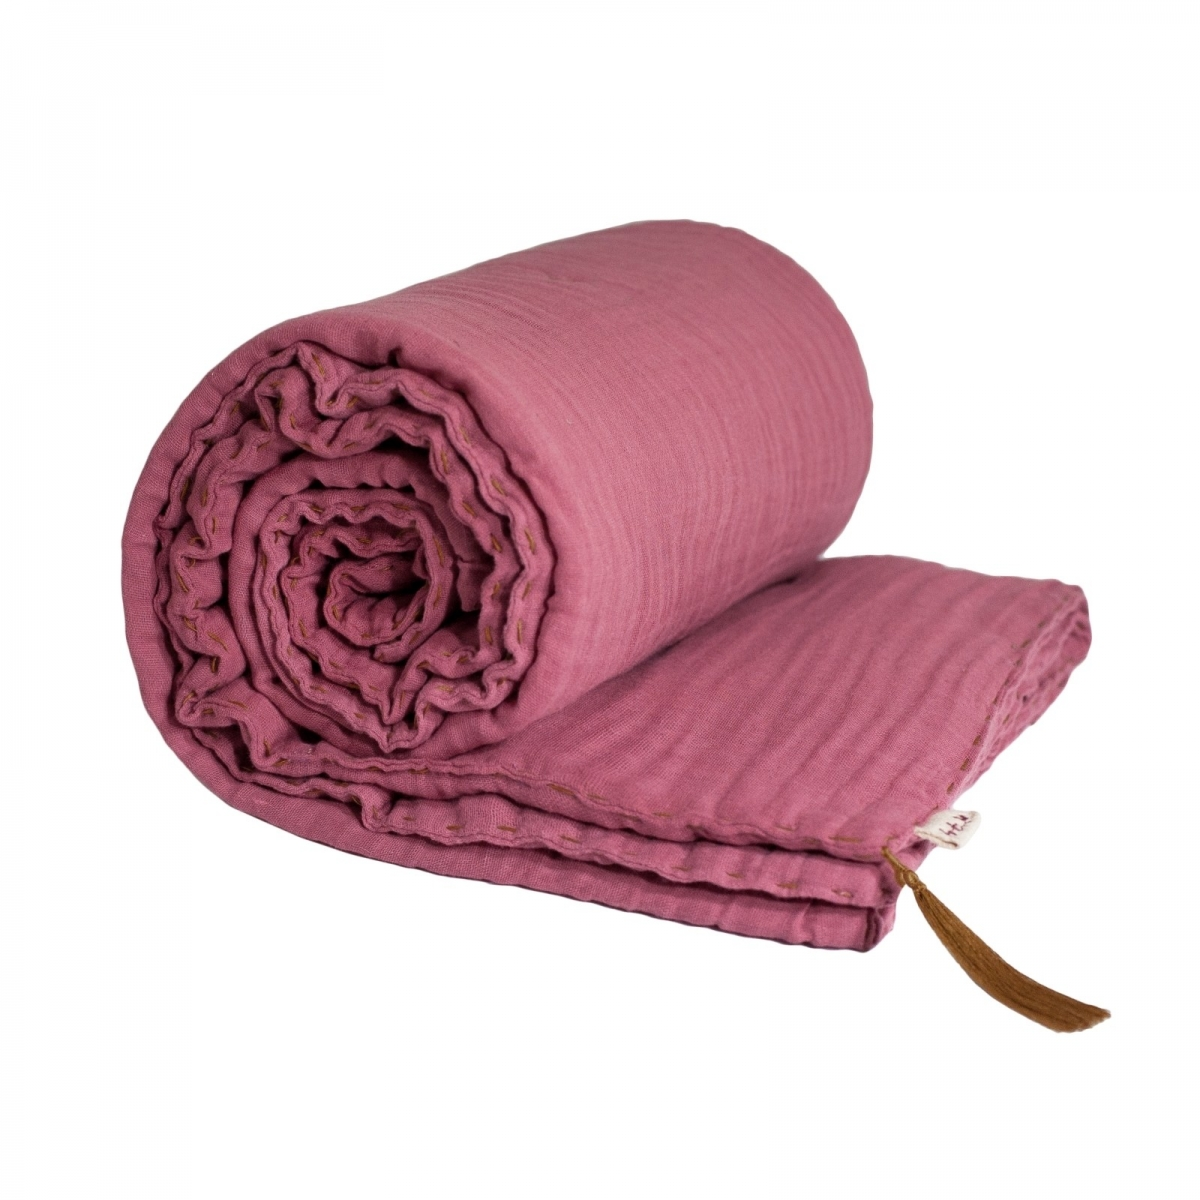 Koc Winter Blanket baobab rose malinowy - Numero 74